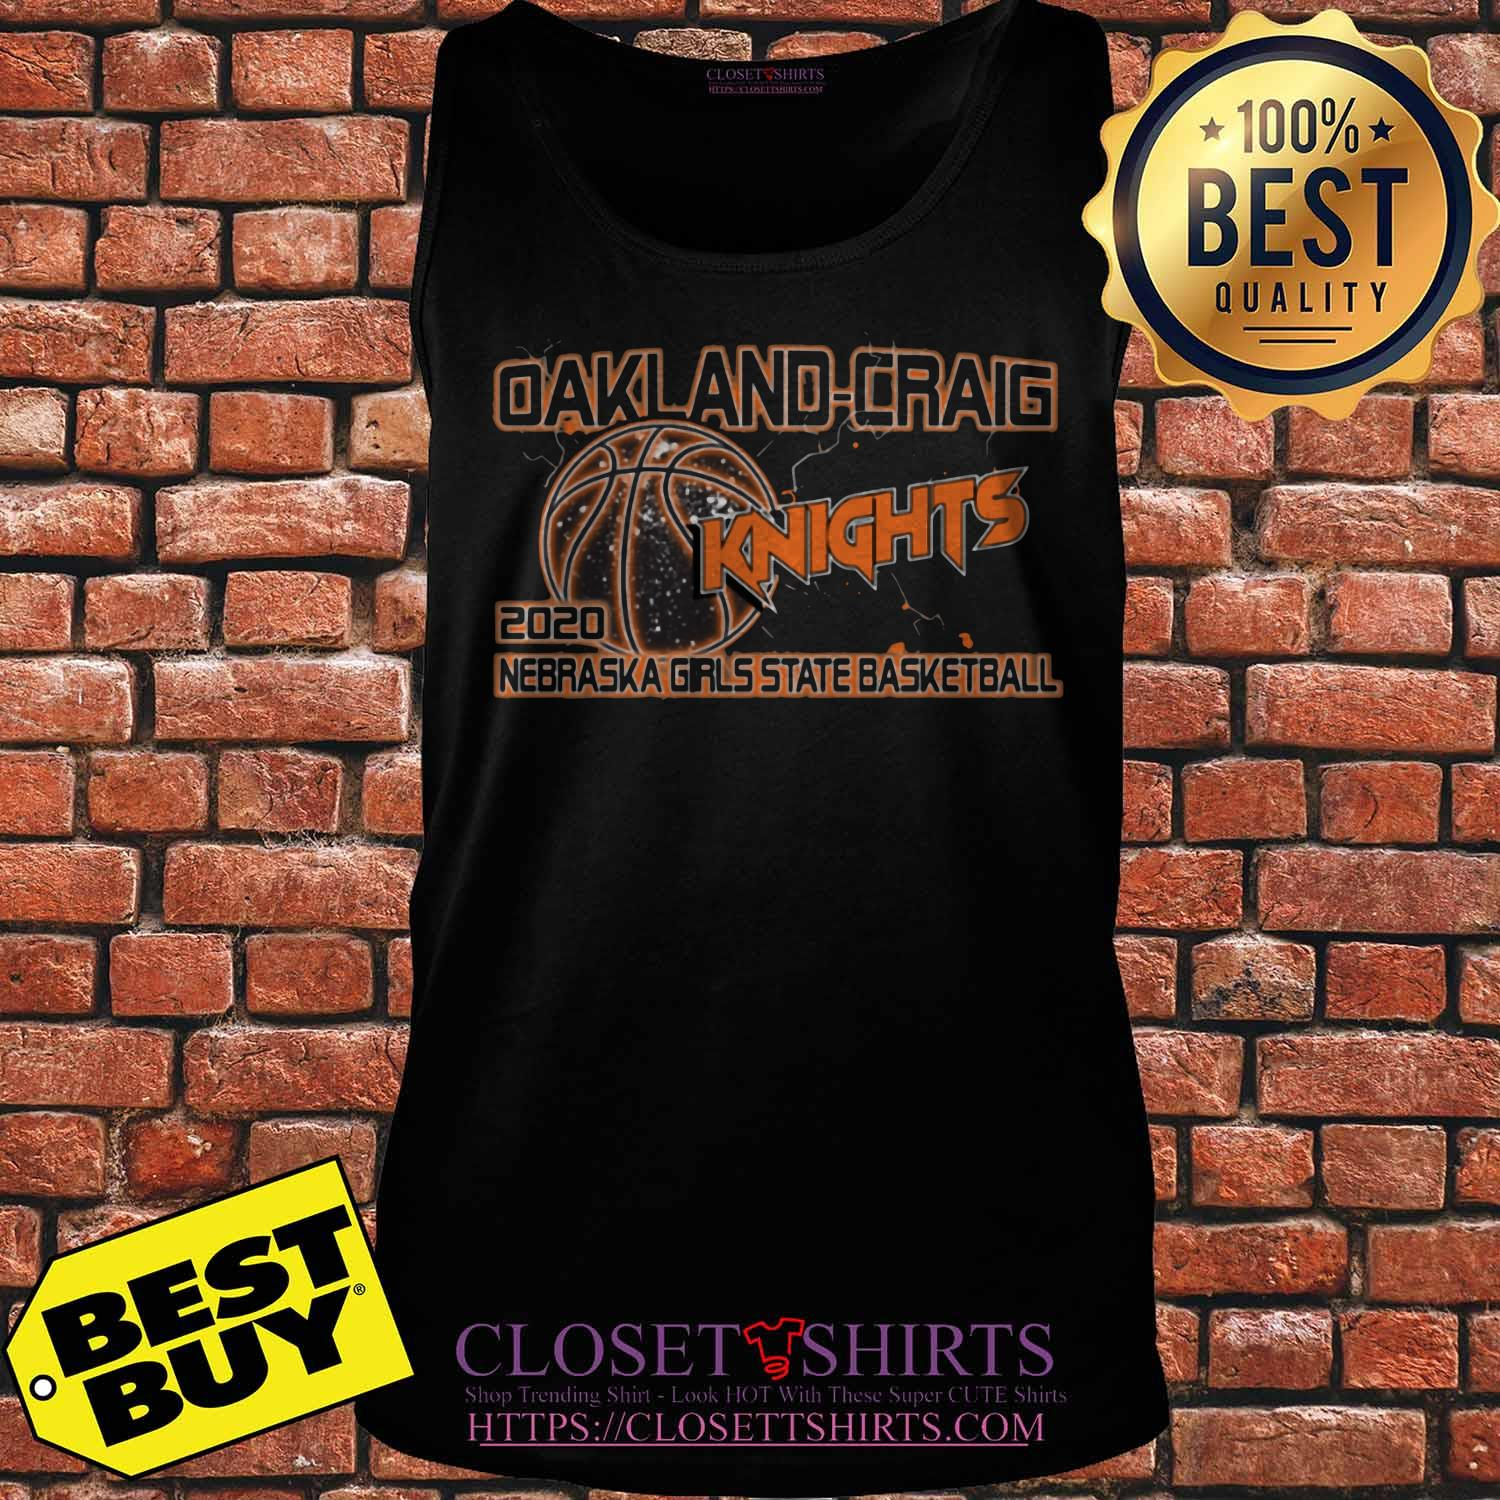 Oakland Craig Knight 2020 Nebraska Girls State Basketball Tank Top